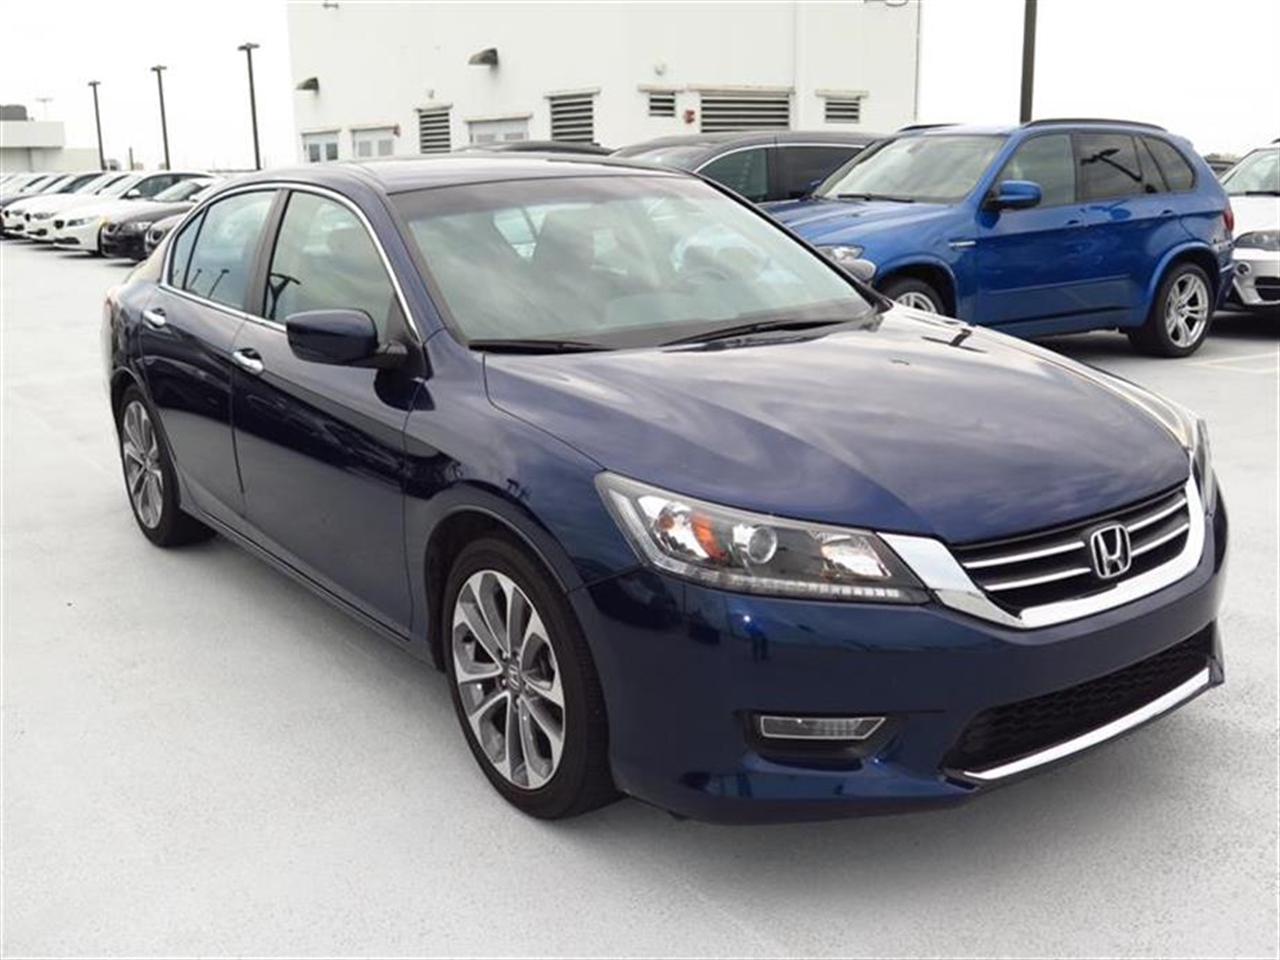 2013 HONDA ACCORD 4dr I4 CVT Sport 21977 miles 12V pwr outlets 8 multi-info display -inc avg fu